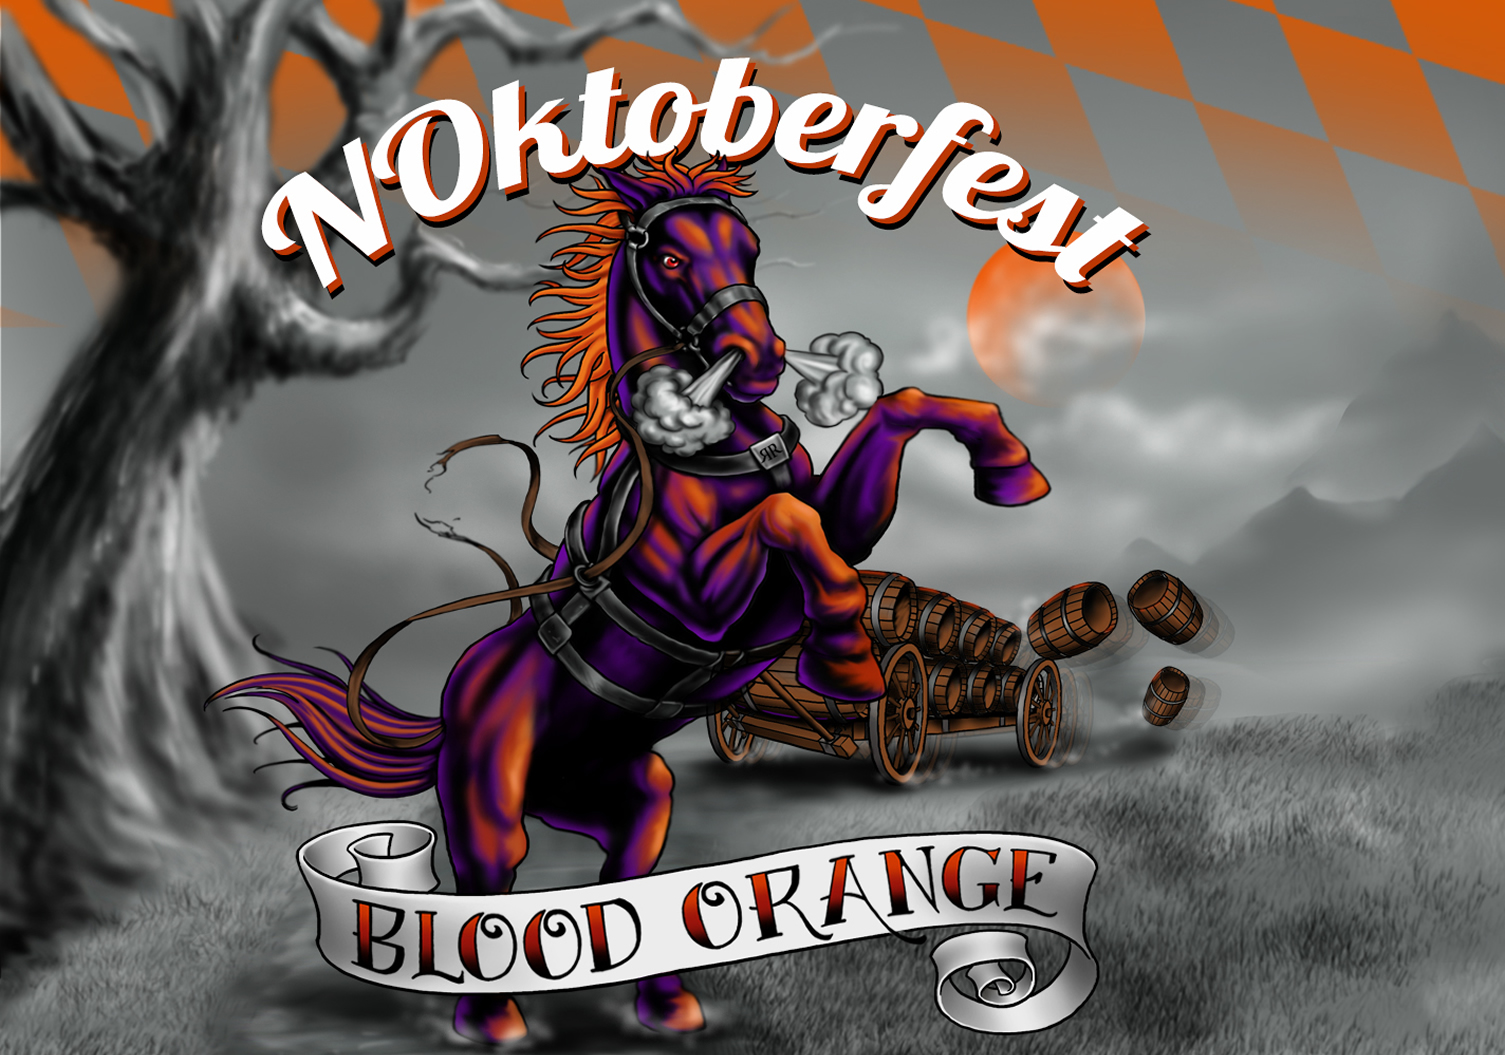 NOktoberfest Blood Orange